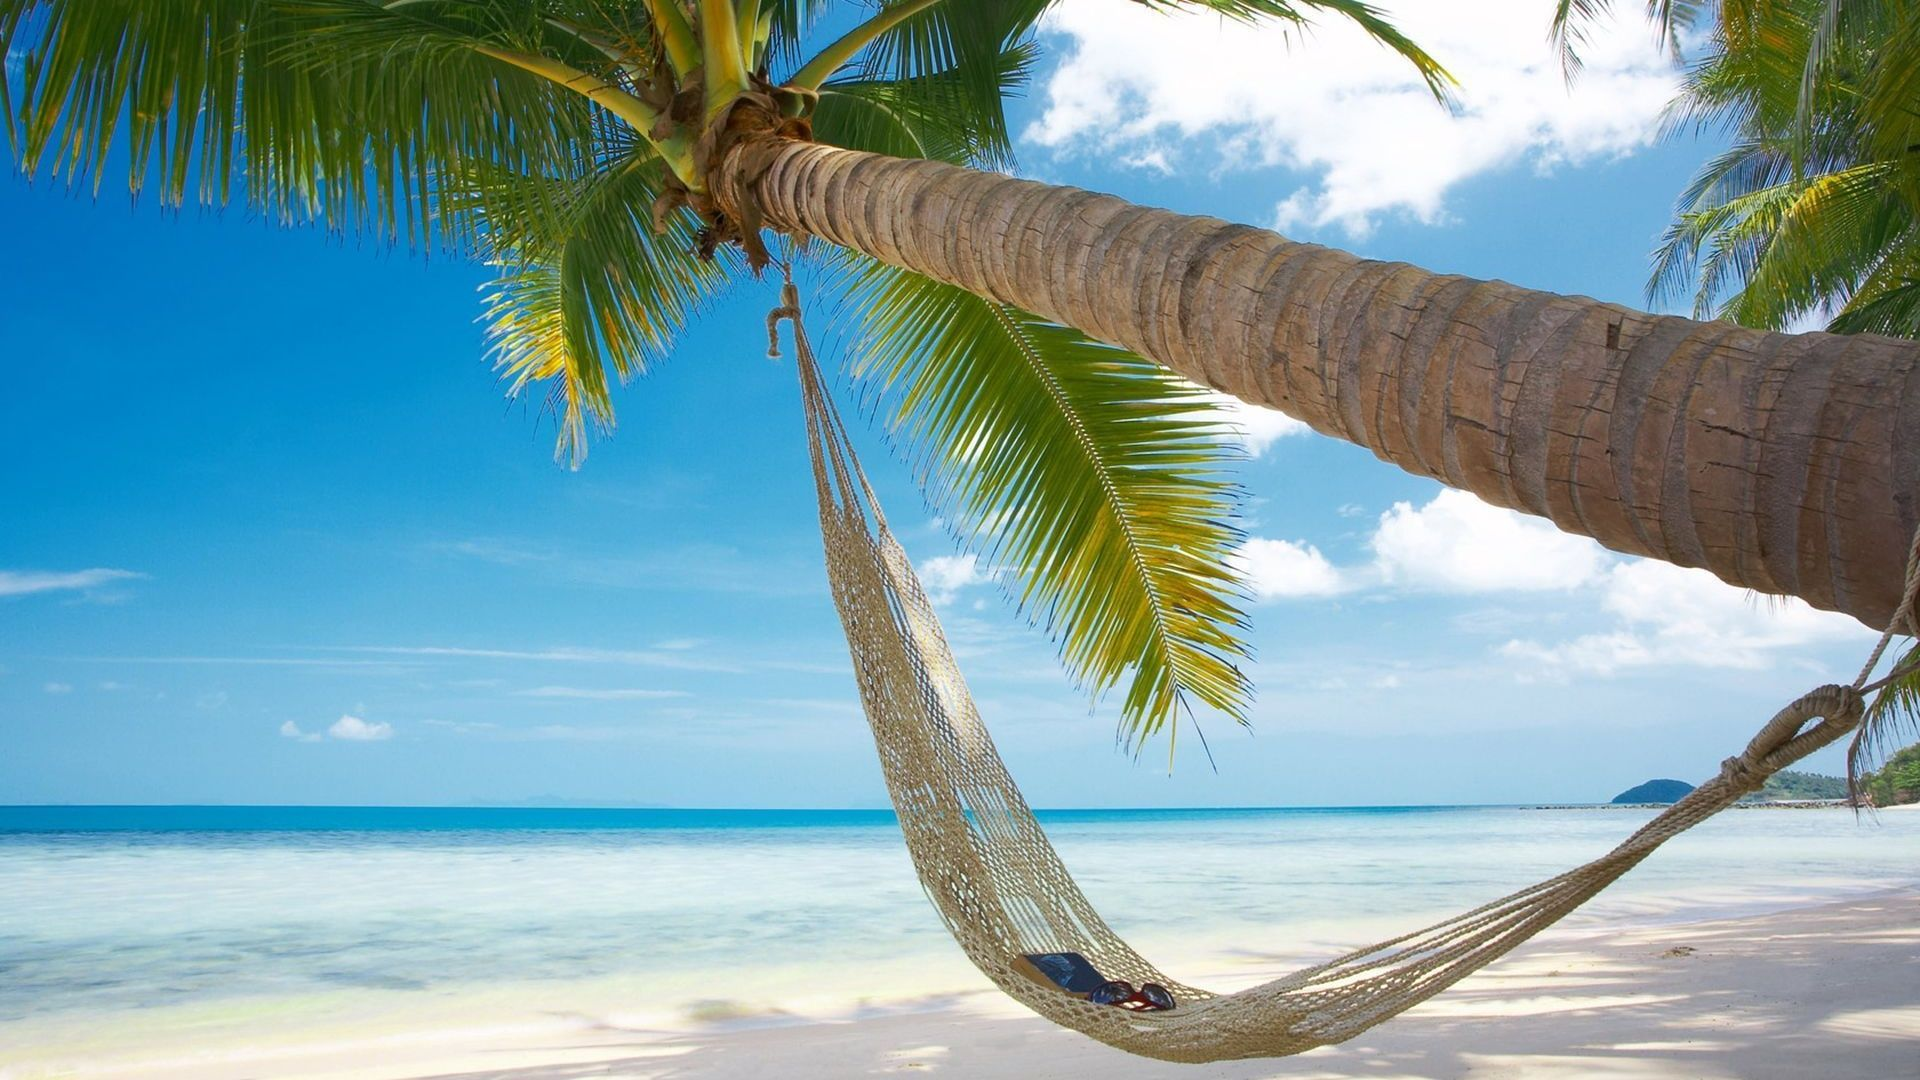 Beach Hammock Palms HD Wallpaper [1920x1080] Need #iPhone